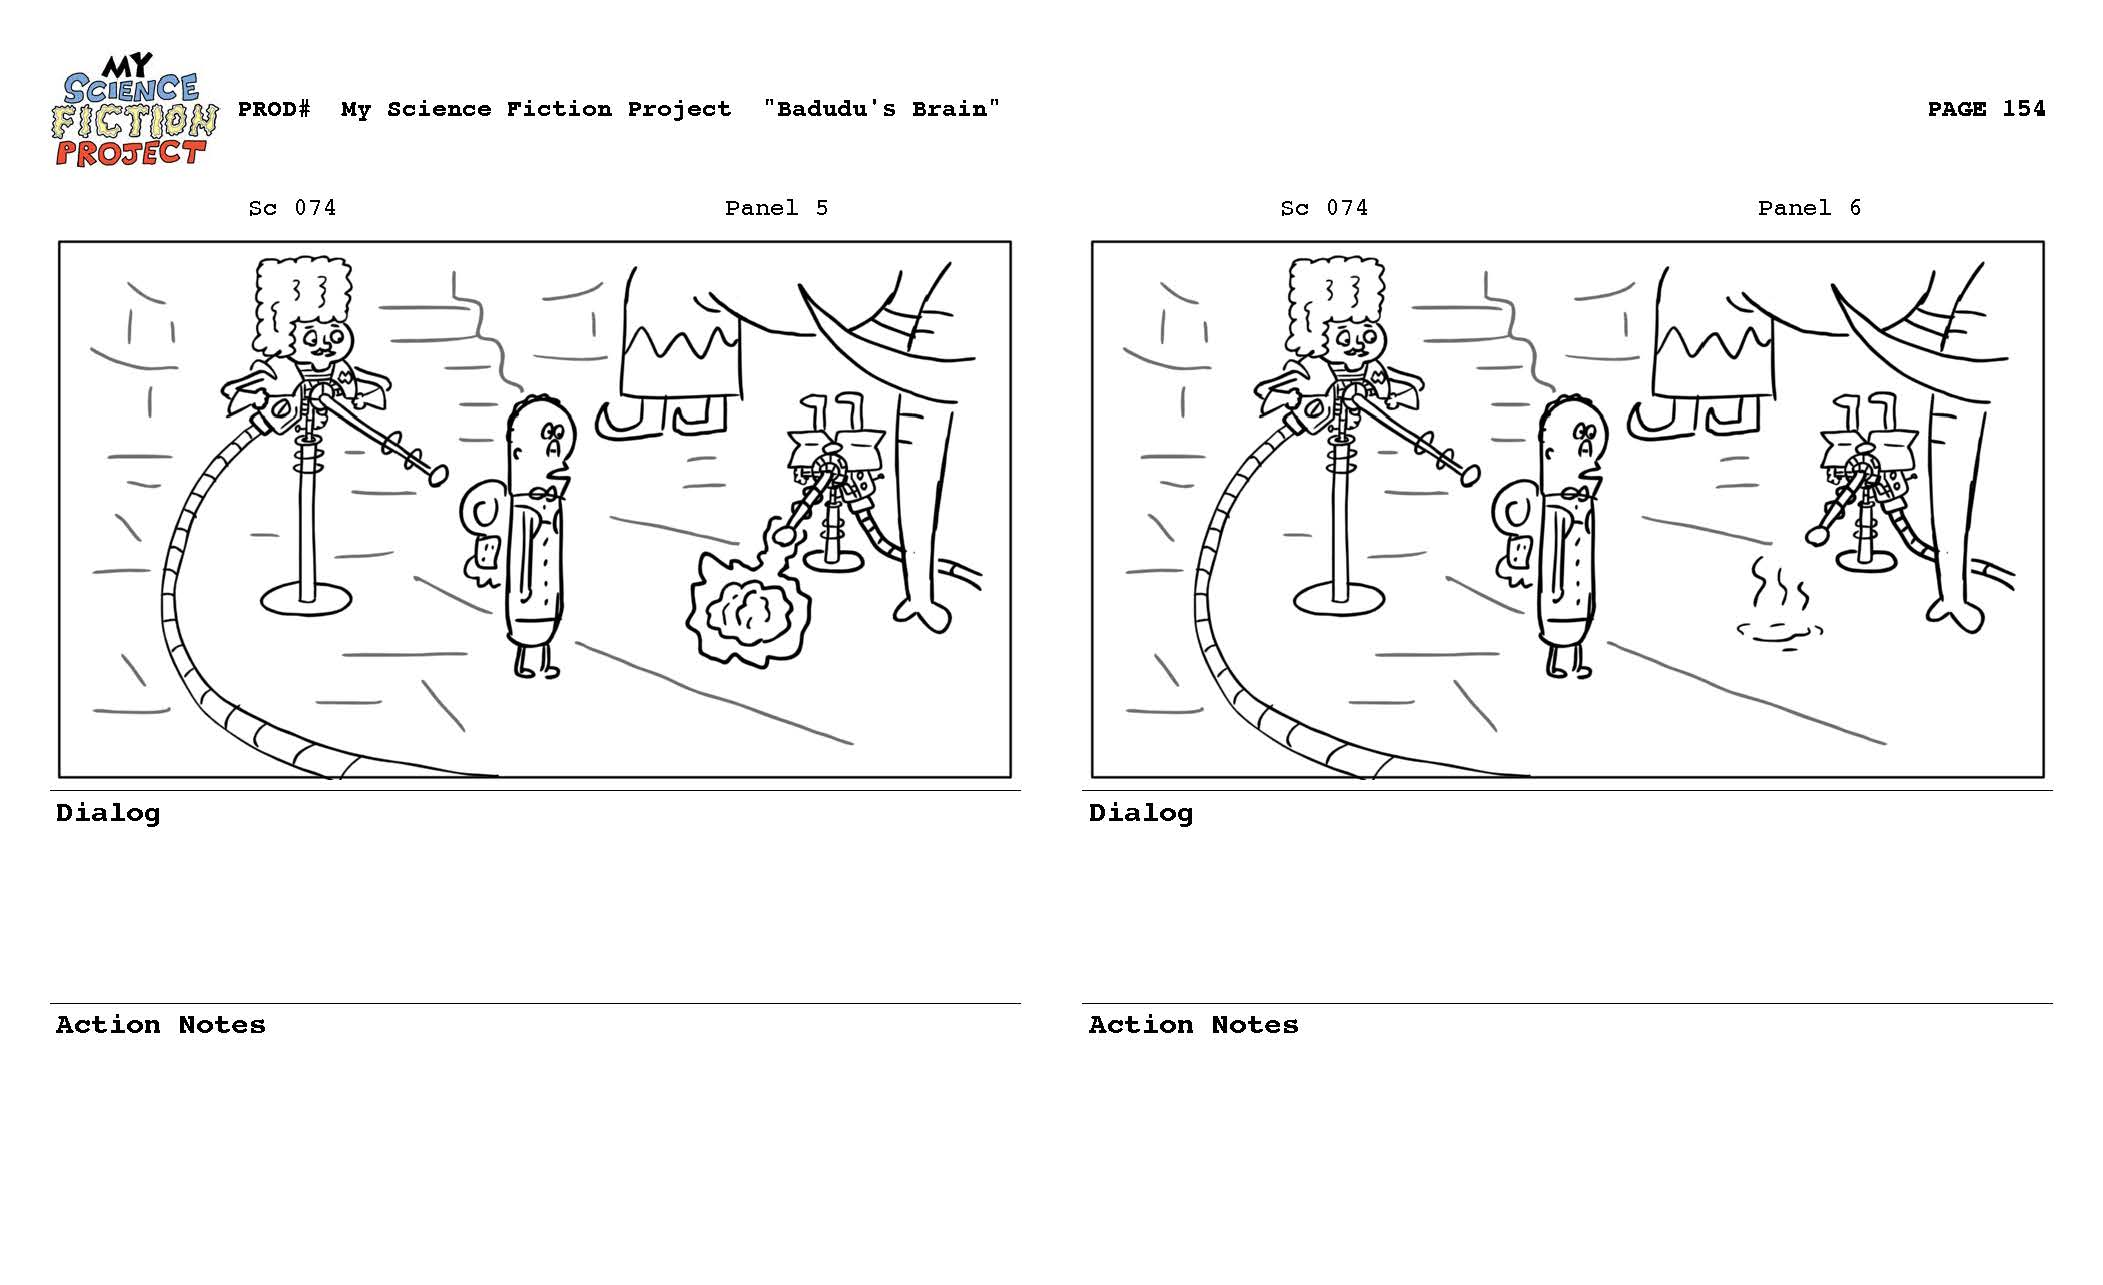 My_Science_Fiction_Project_SB_083112_reduced_Page_154.jpg